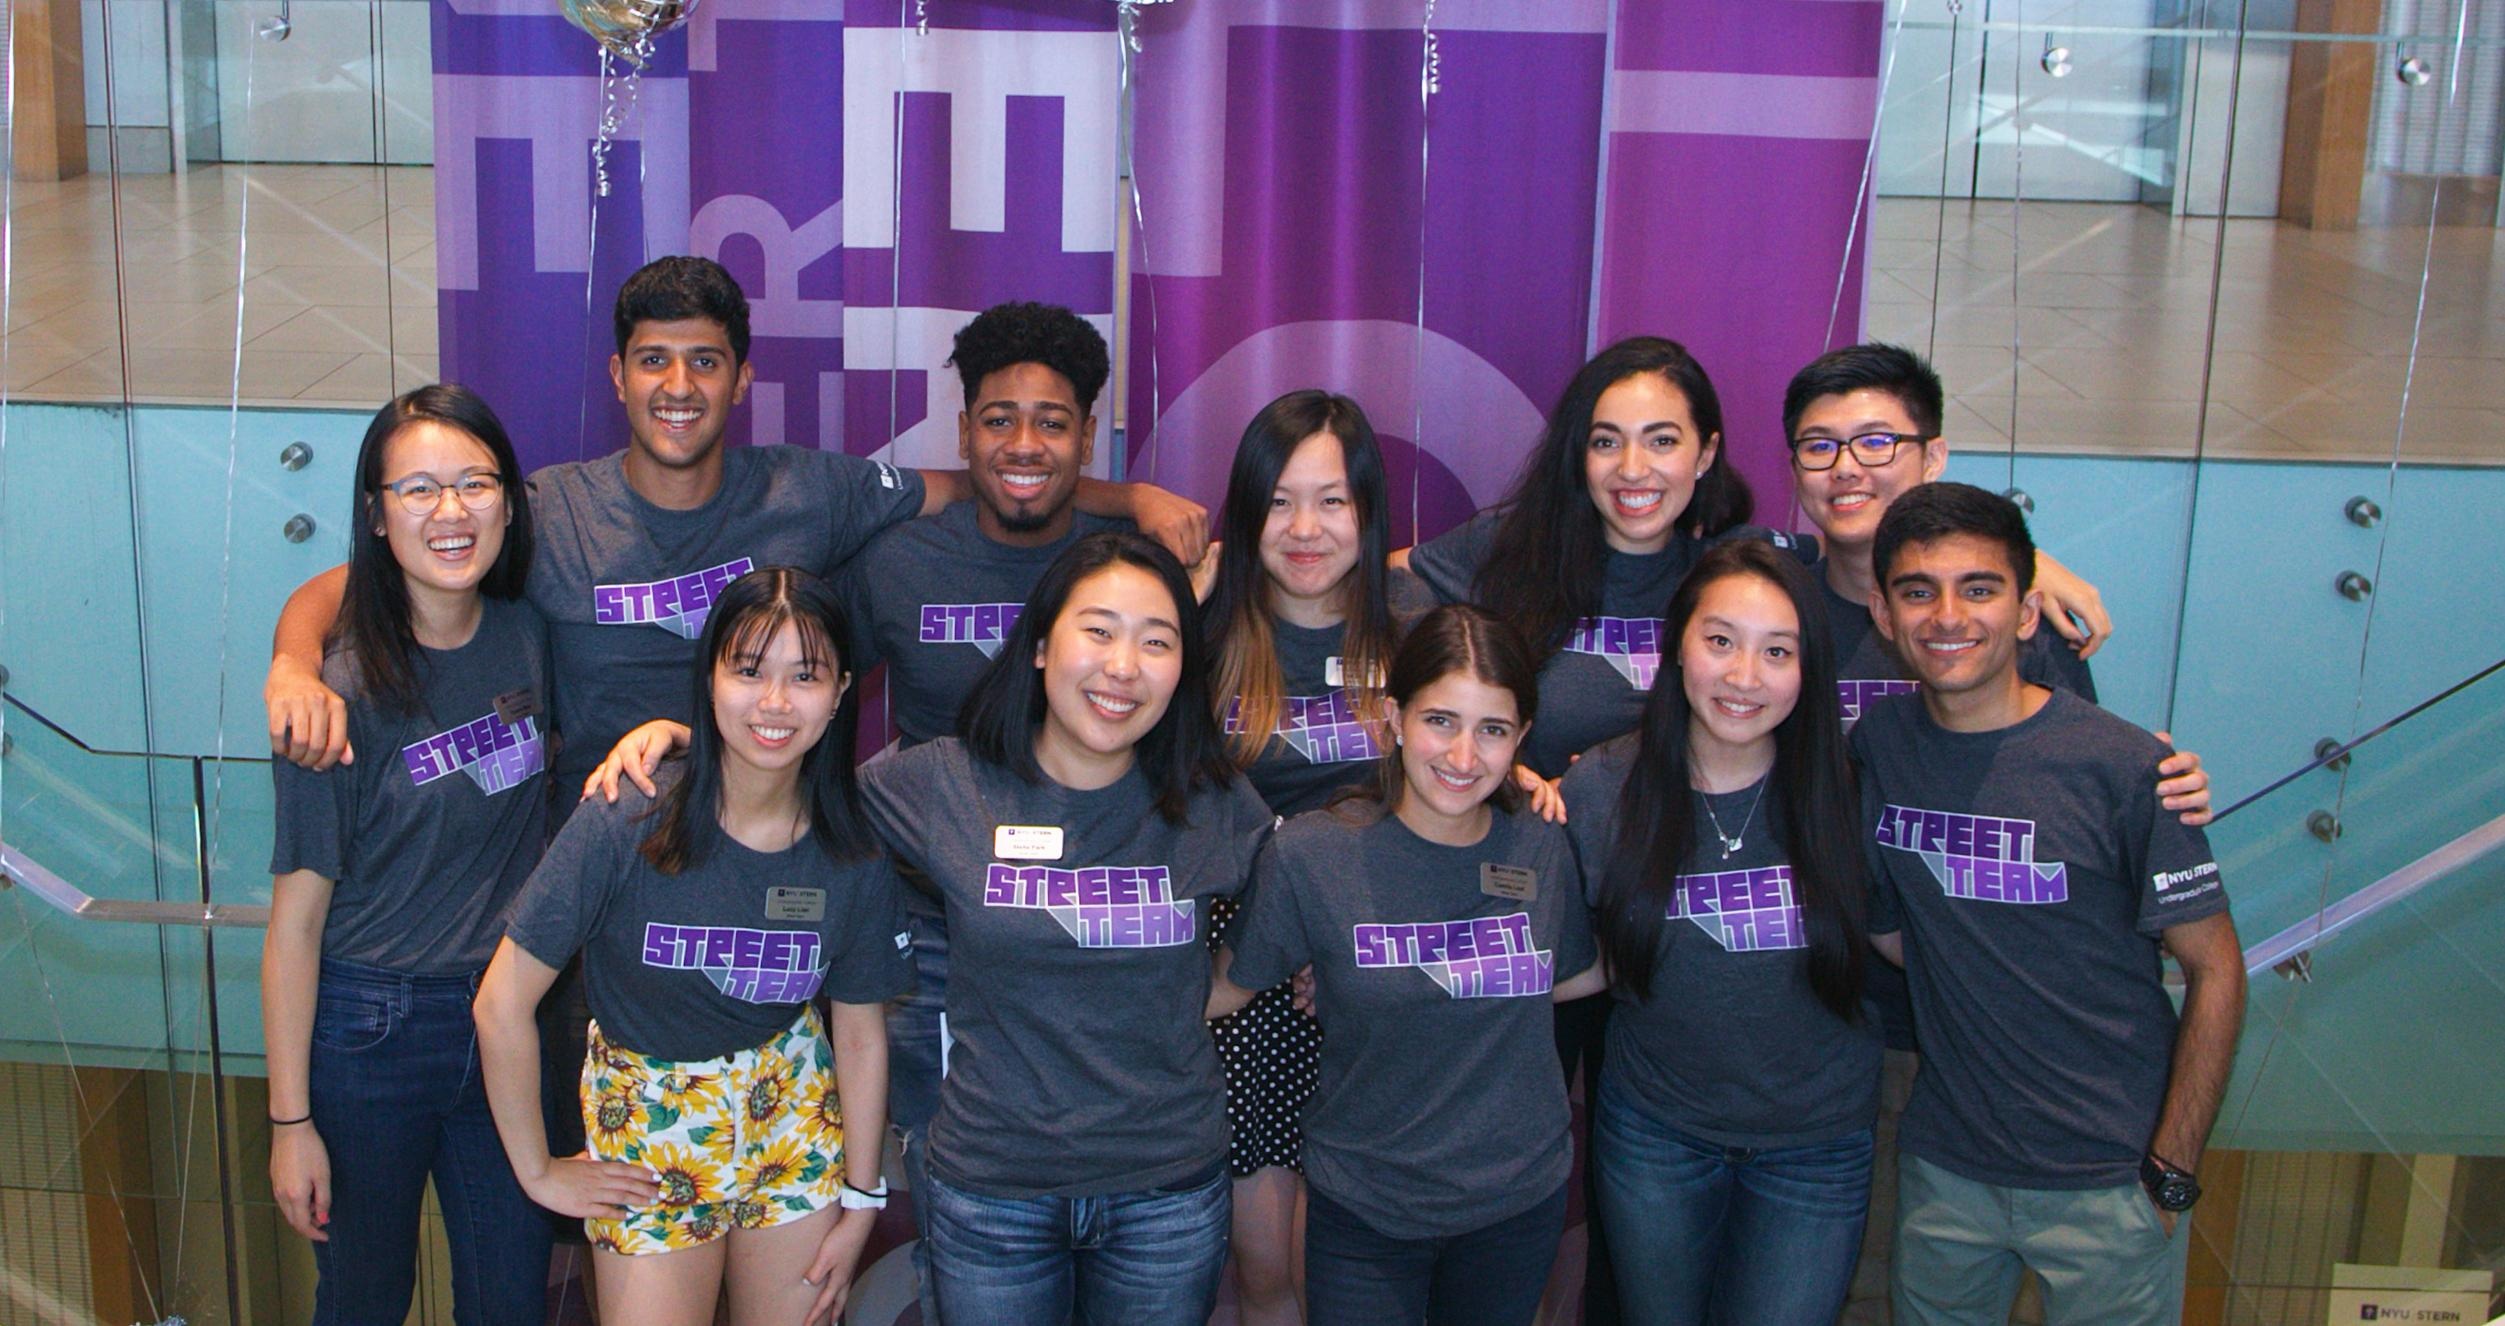 The NYU Stern Street Team at Open House 2017